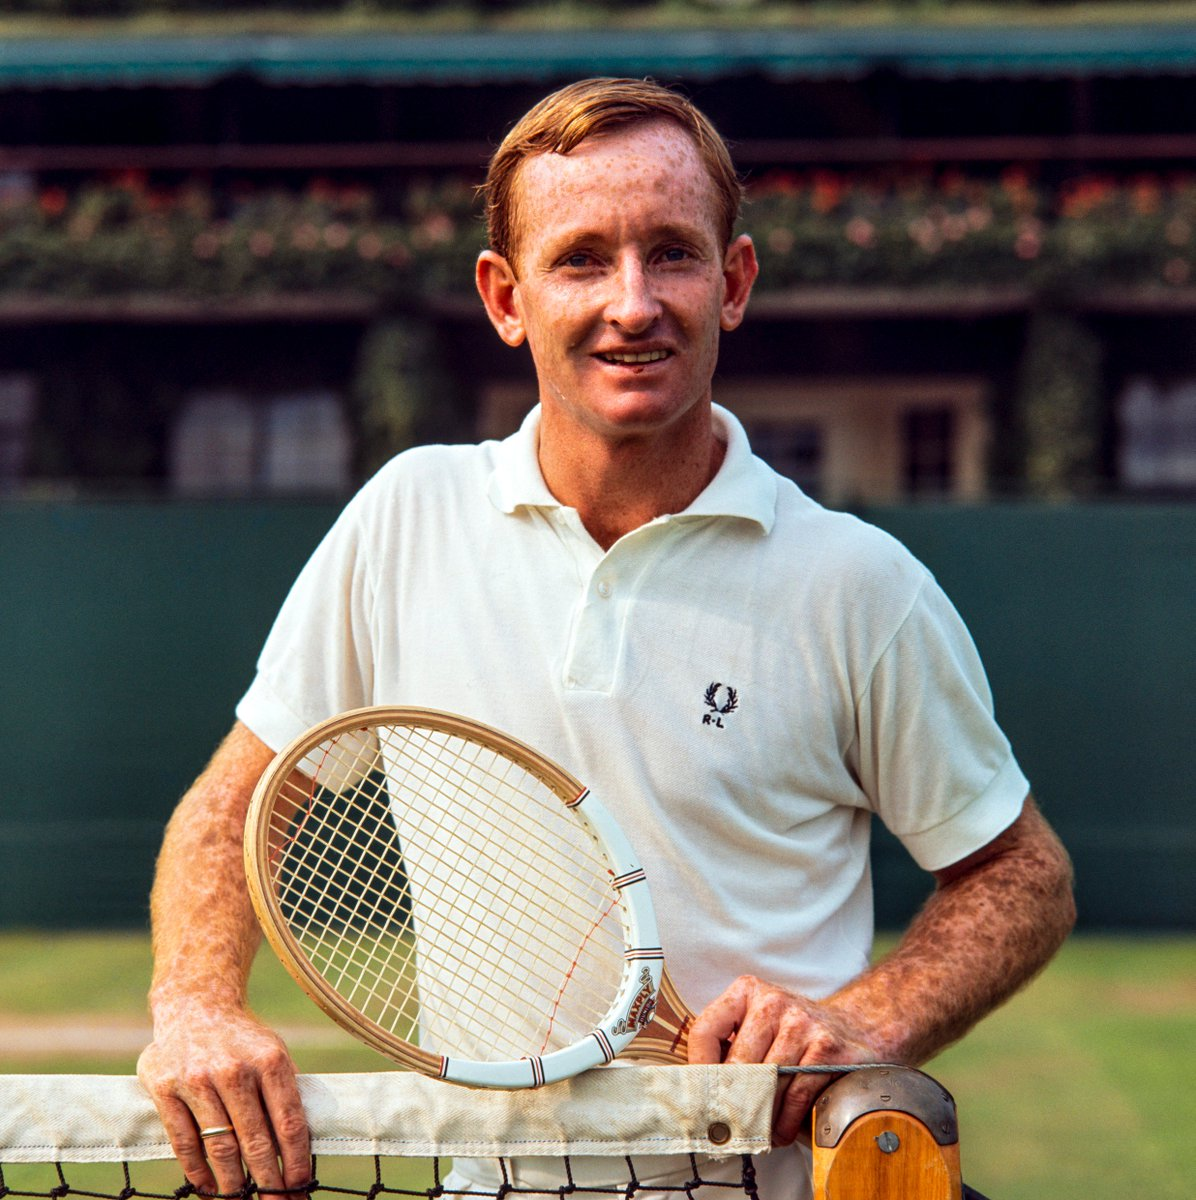 The legendary @rodlaver is celebrating his 80th birthday today 🎉 #Wimbledon